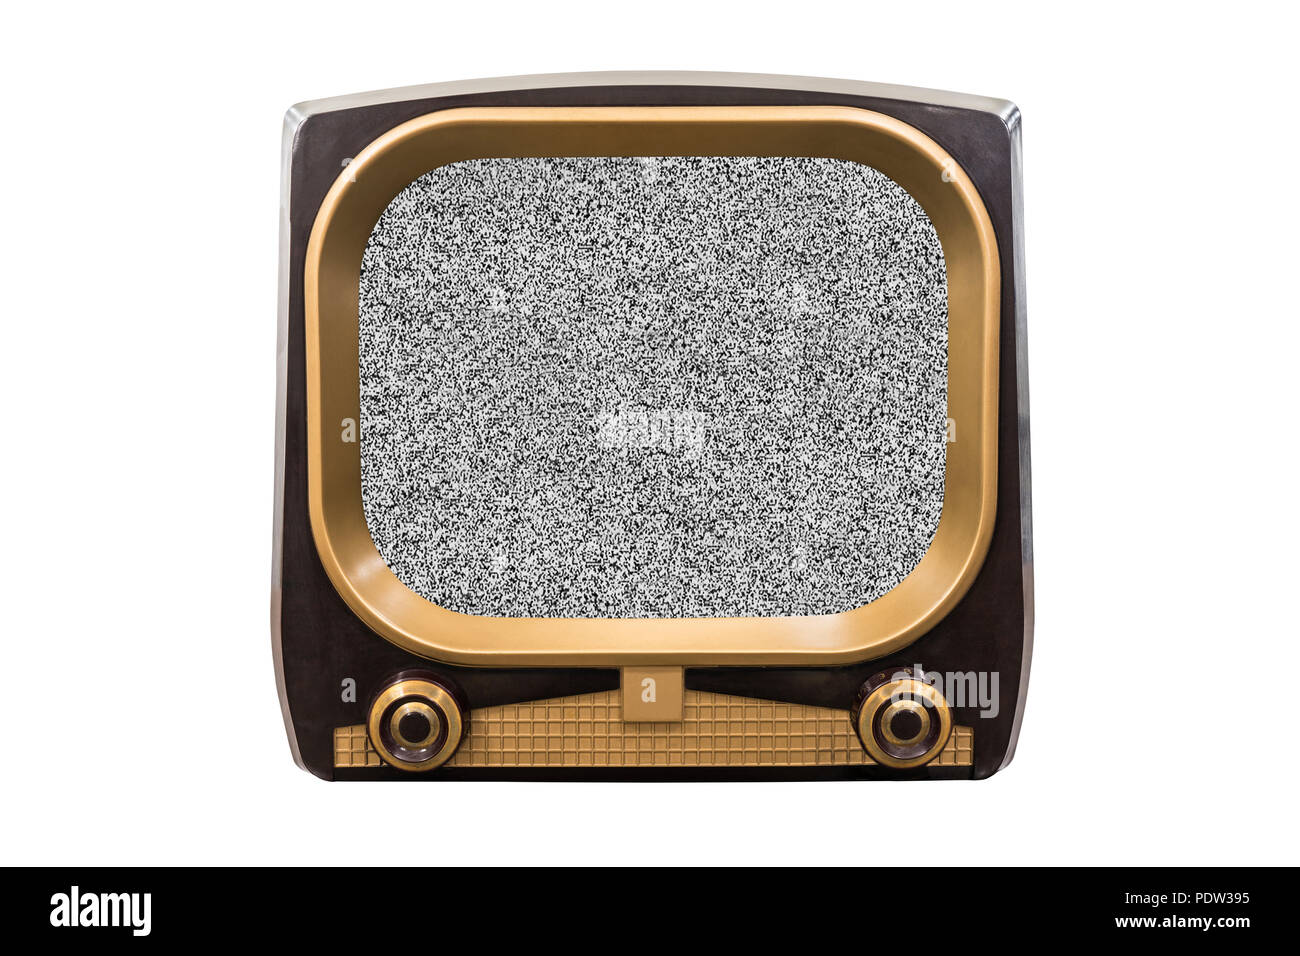 Retro 1950s television isolated on white with static screen. - Stock Image